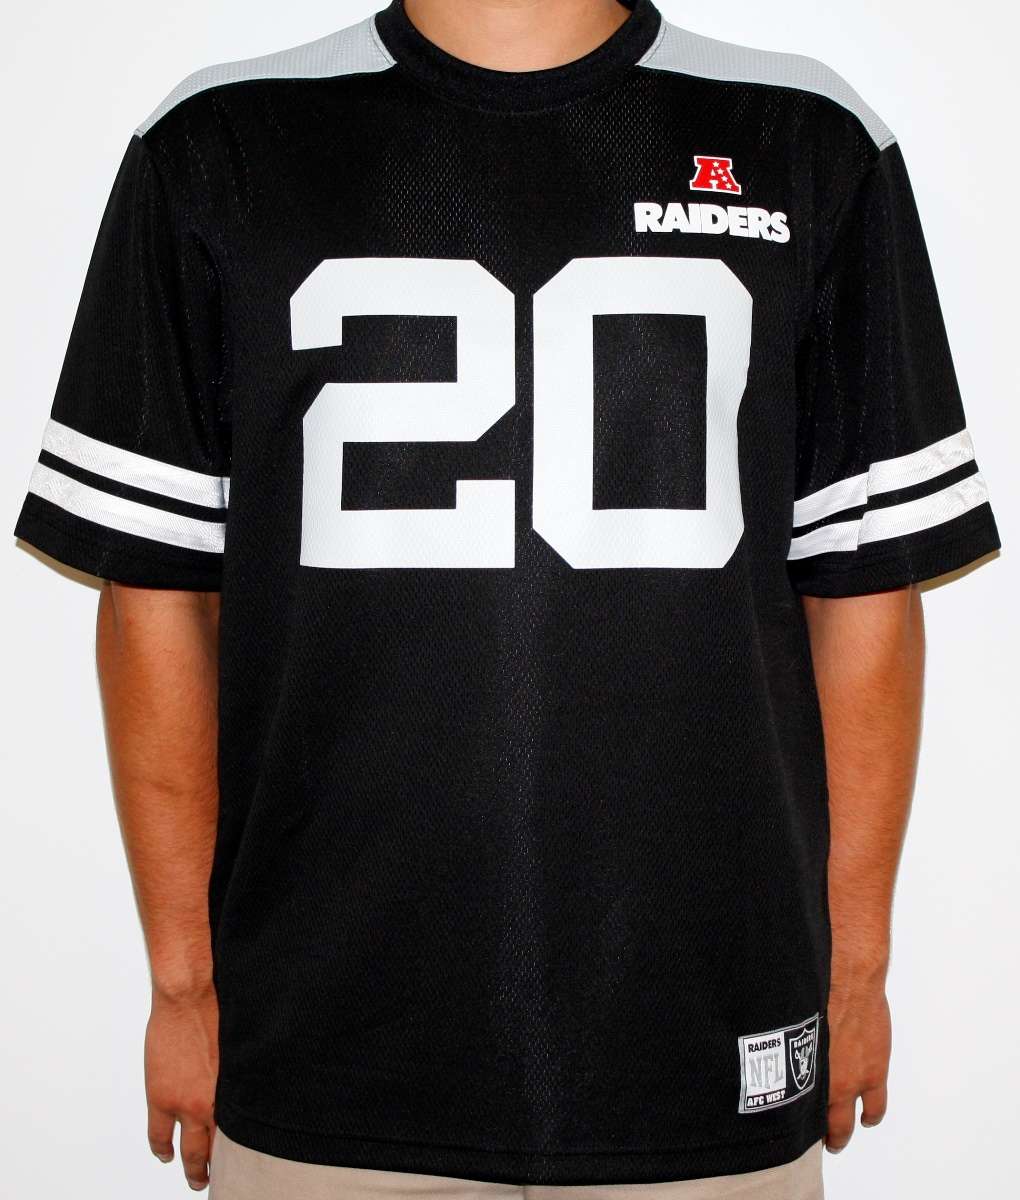 huge selection of de624 77f83 Howie Long Oakland Raiders NFL Mitchell & Ness Throwback ...